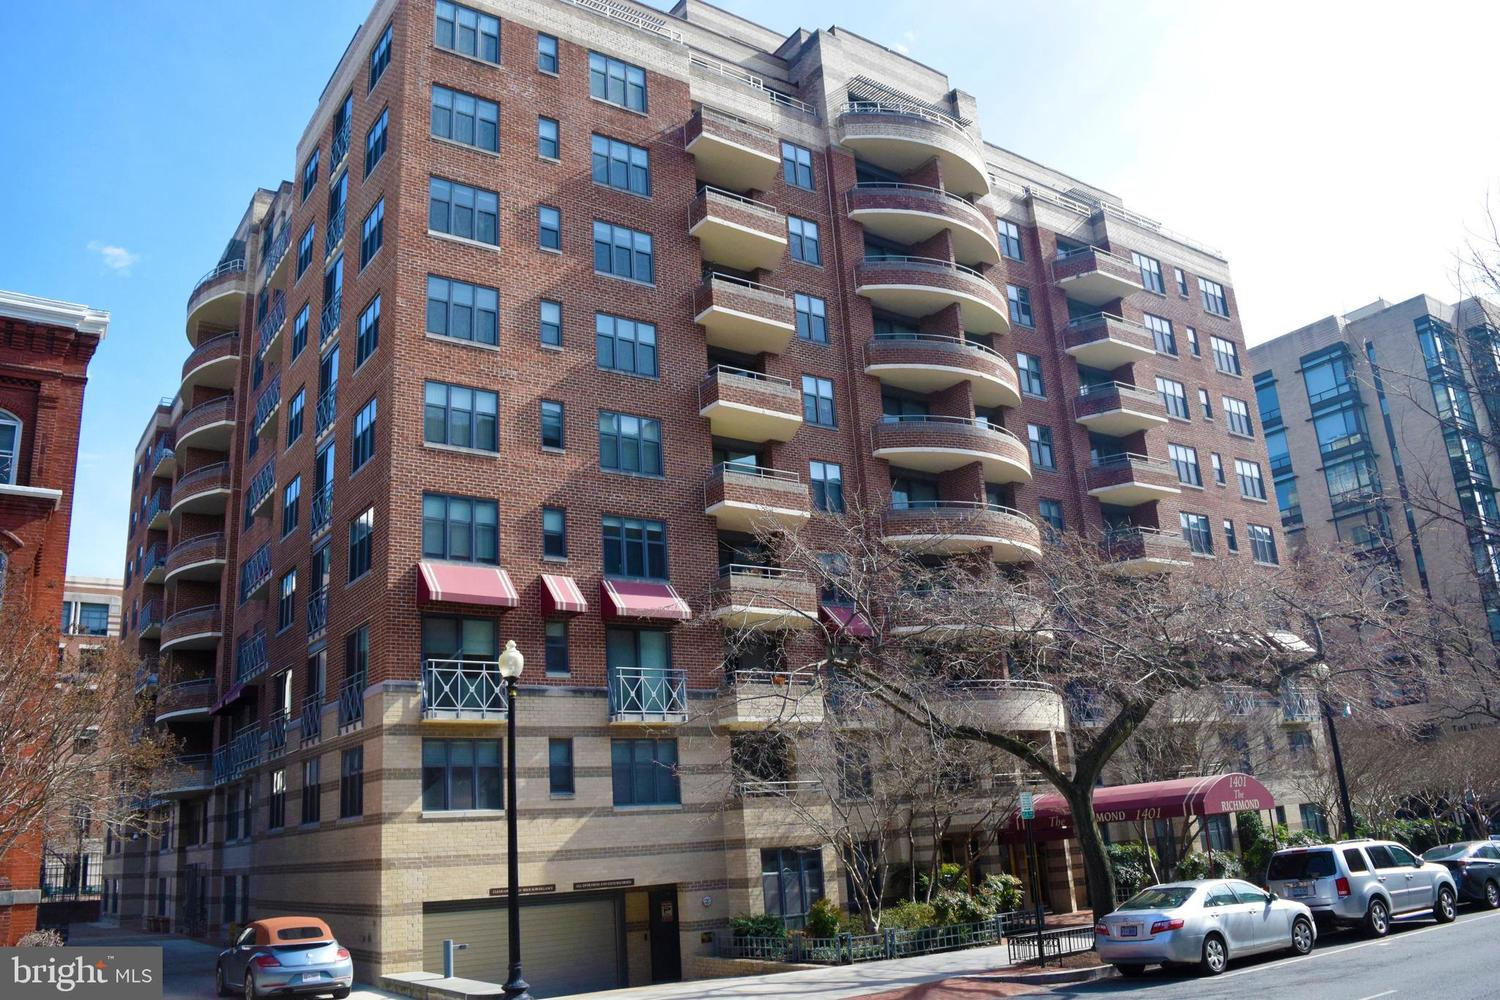 1401 17th Street Northwest, Unit 307 Washington, DC 20036